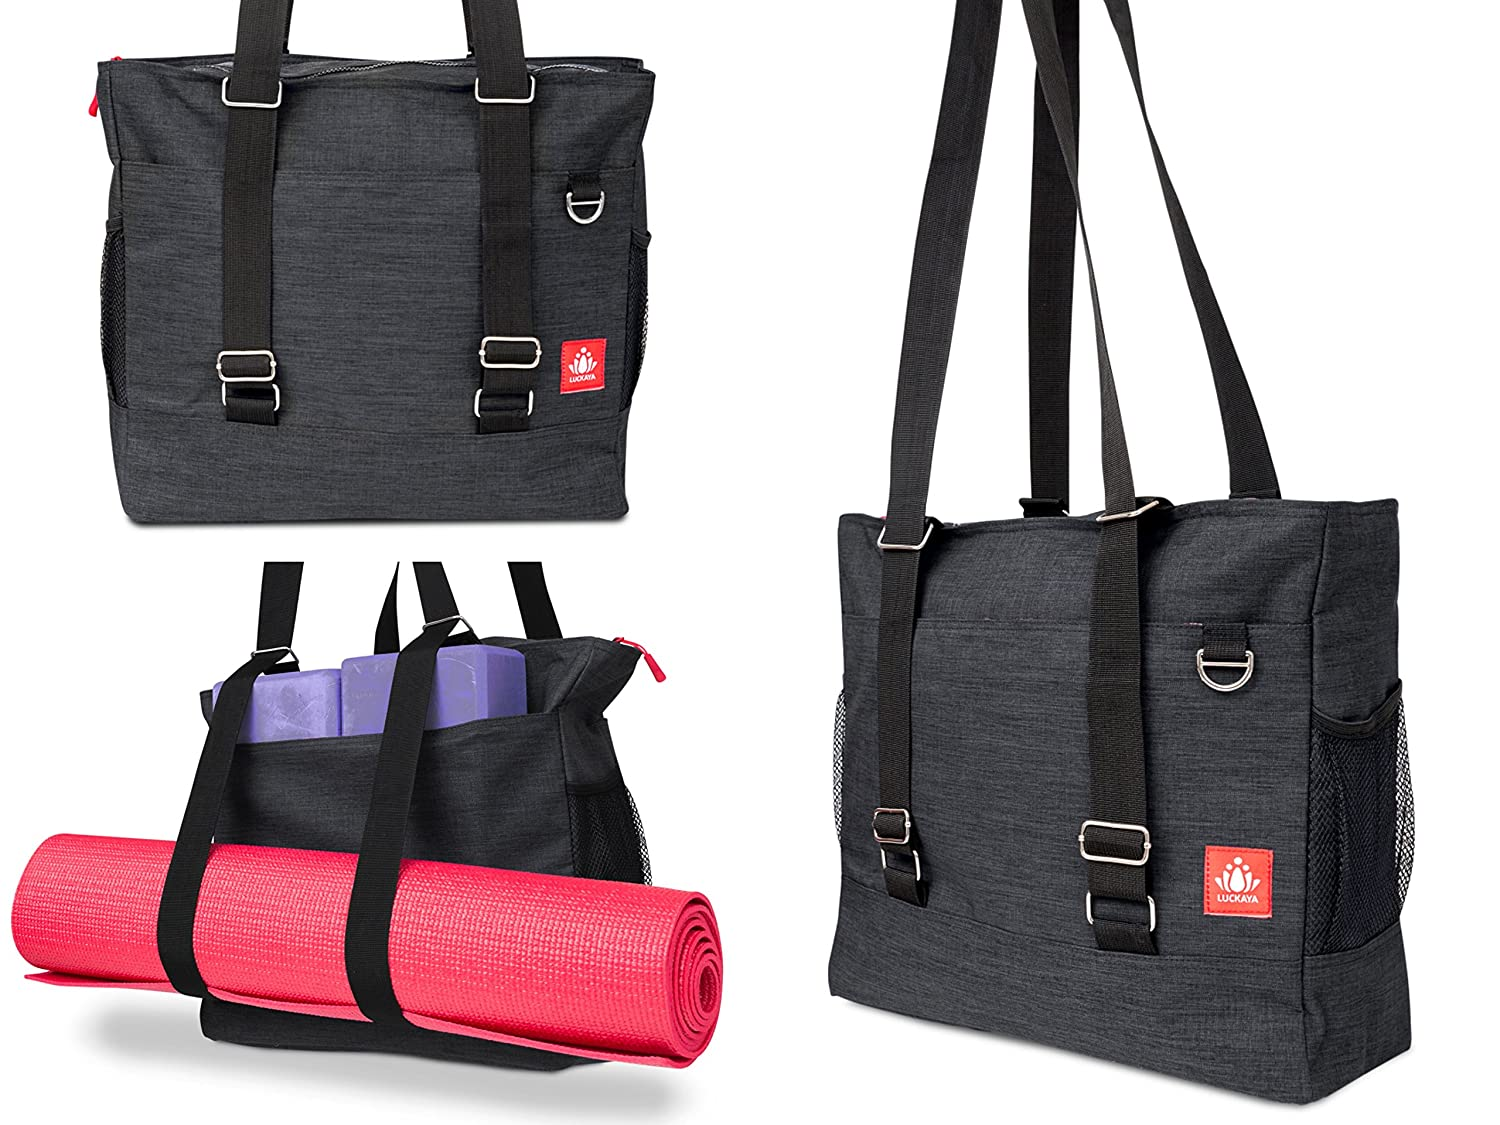 6532ba51be50 LUCKAYA Yoga Mat Bag/Tote Bag/Backpack: Multi Purpose Carryall Bag for  Office,Yoga,Travel and Gym! Carry Your Mat of Any Size,Laptop and Gear in  One ...